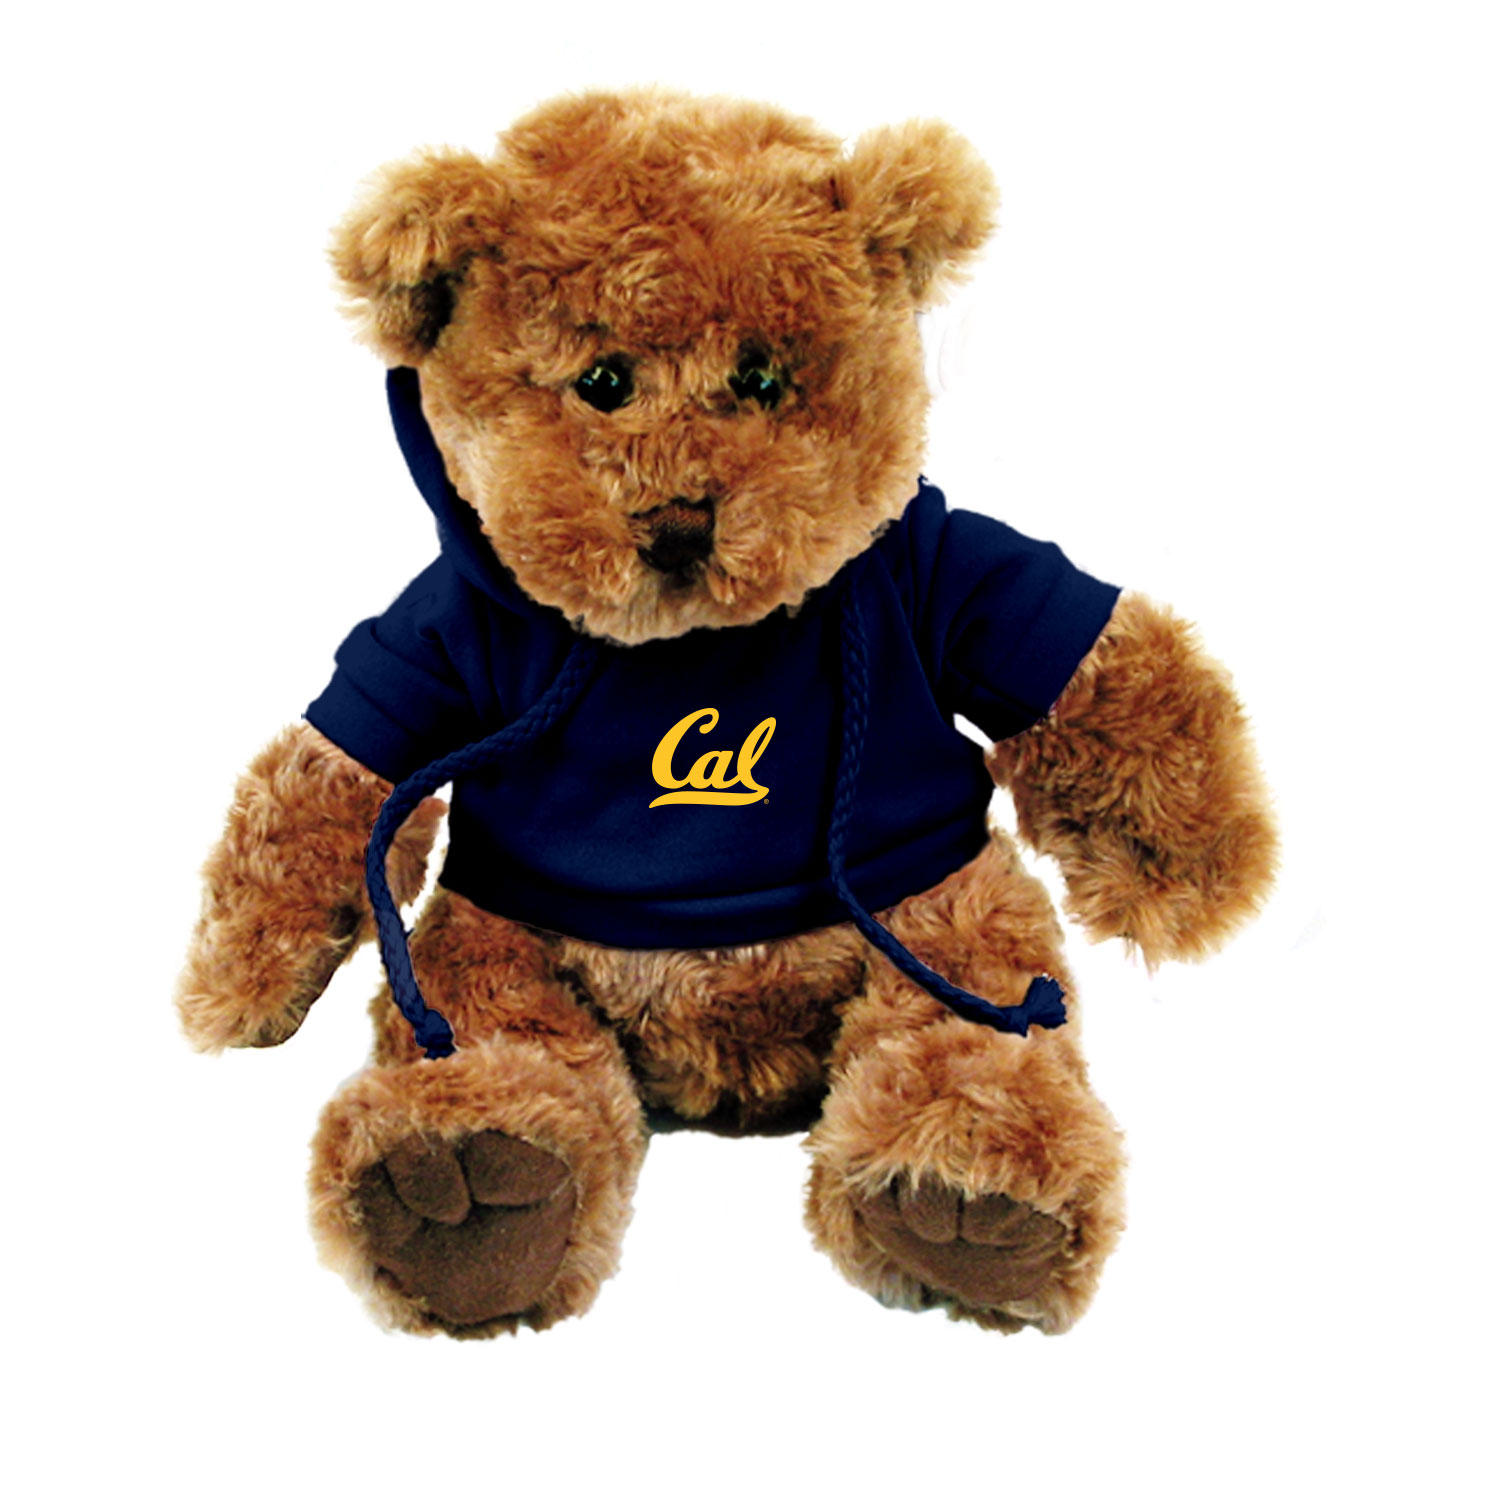 MCM Traditional Bear with Cal Hoody 10in